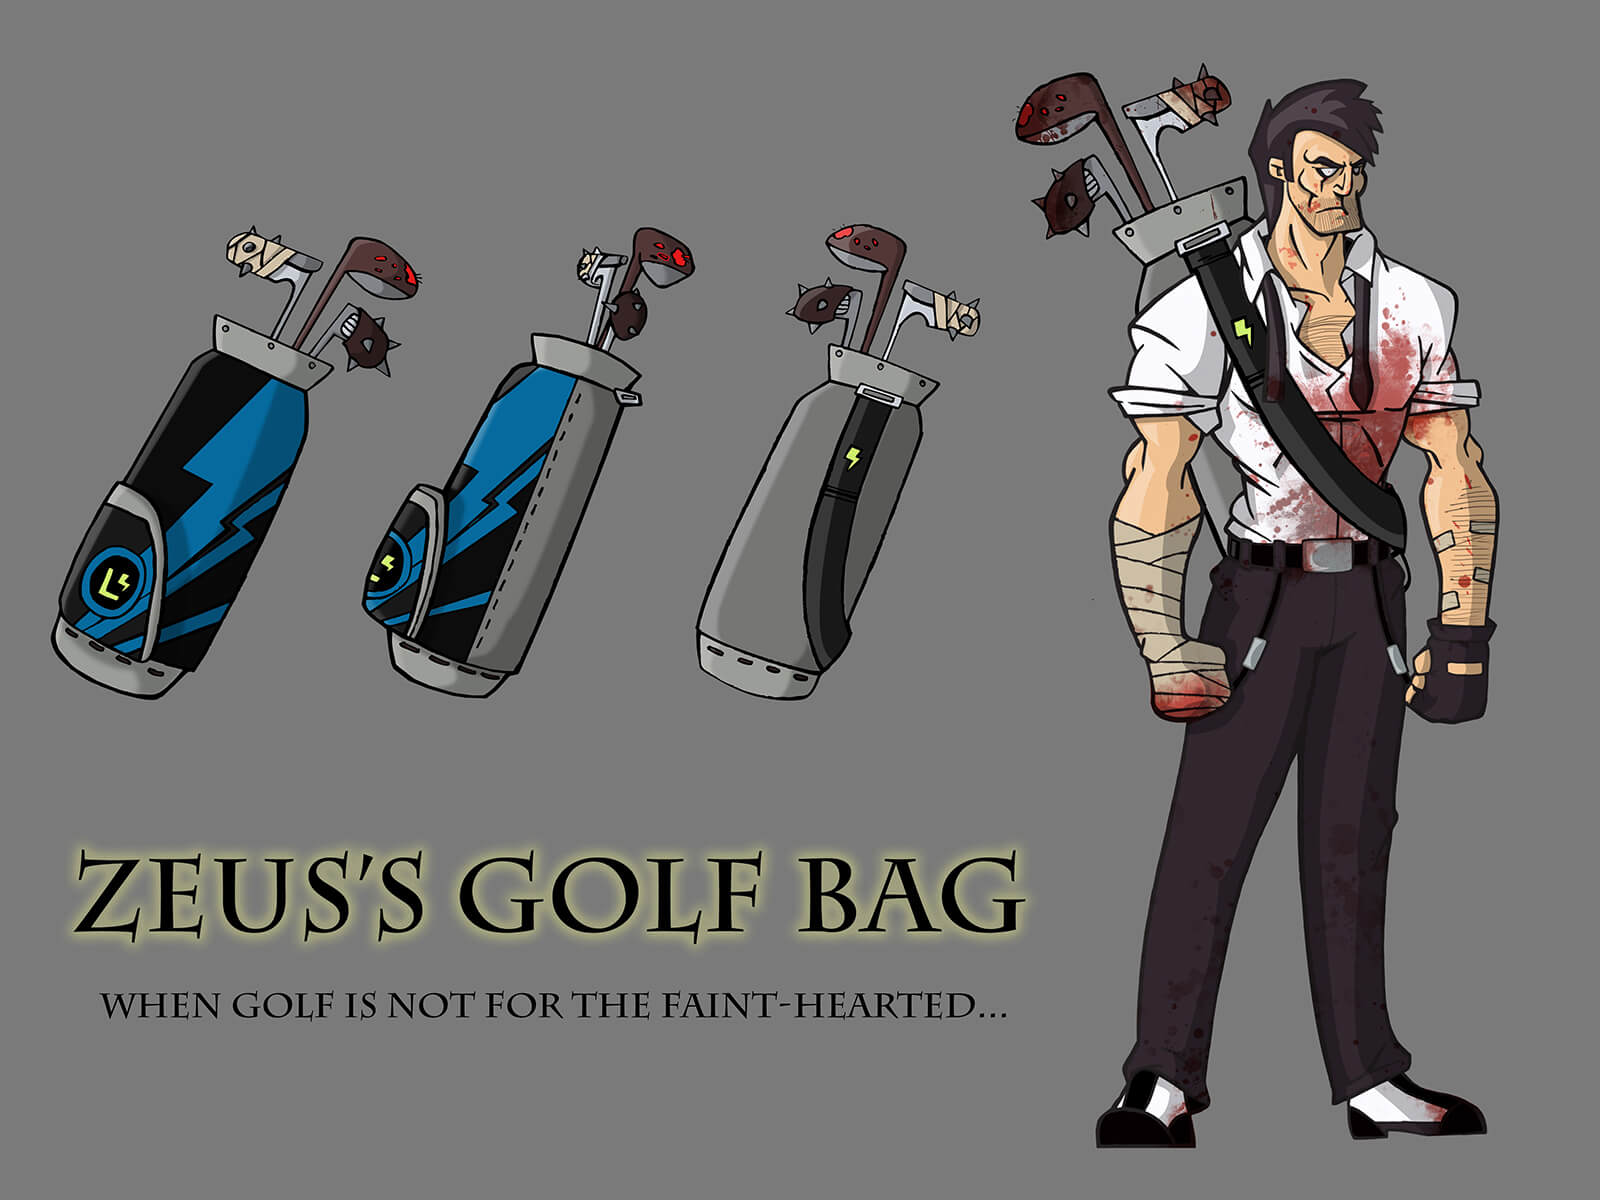 Cartoon sketches of a golf bag of threatening golf clubs, slung over the shoulder of a tall, blood-splattered man.